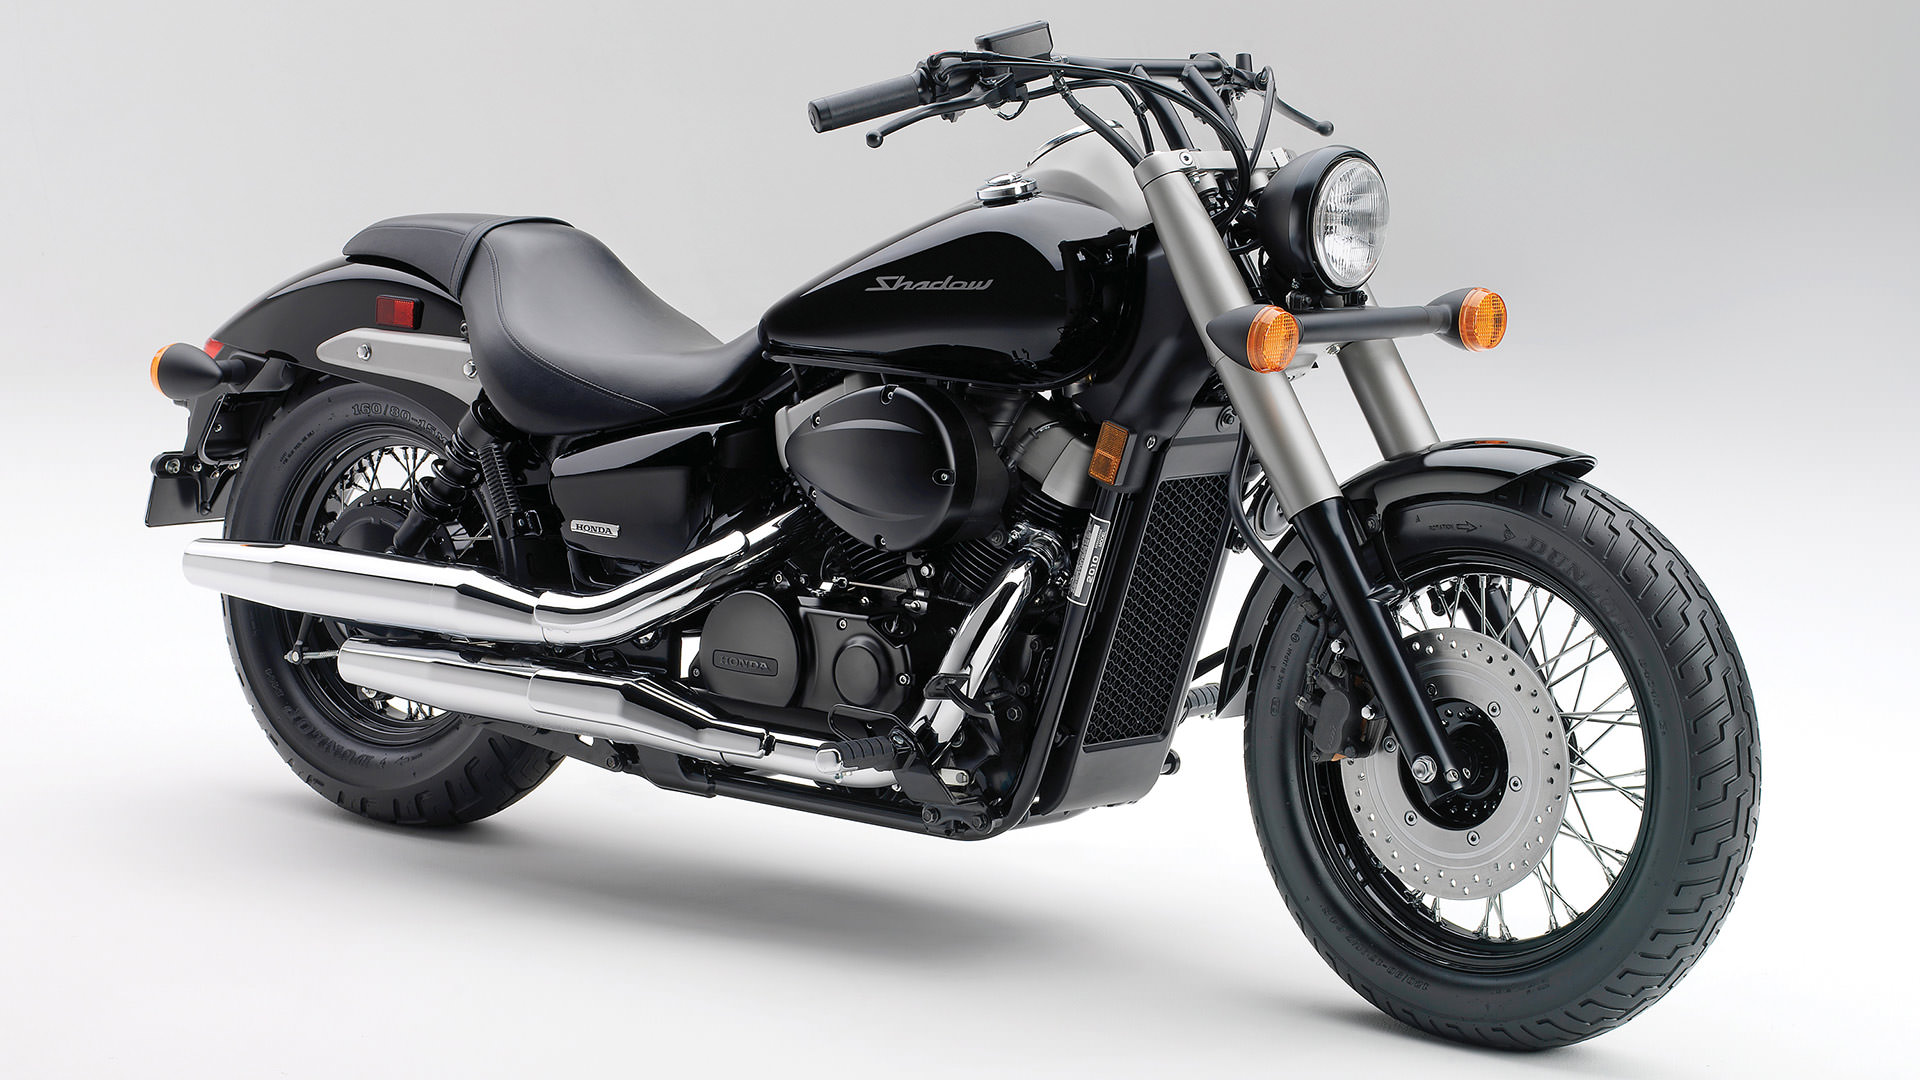 2016 honda shadow phantom 750 review specs pictures. Black Bedroom Furniture Sets. Home Design Ideas